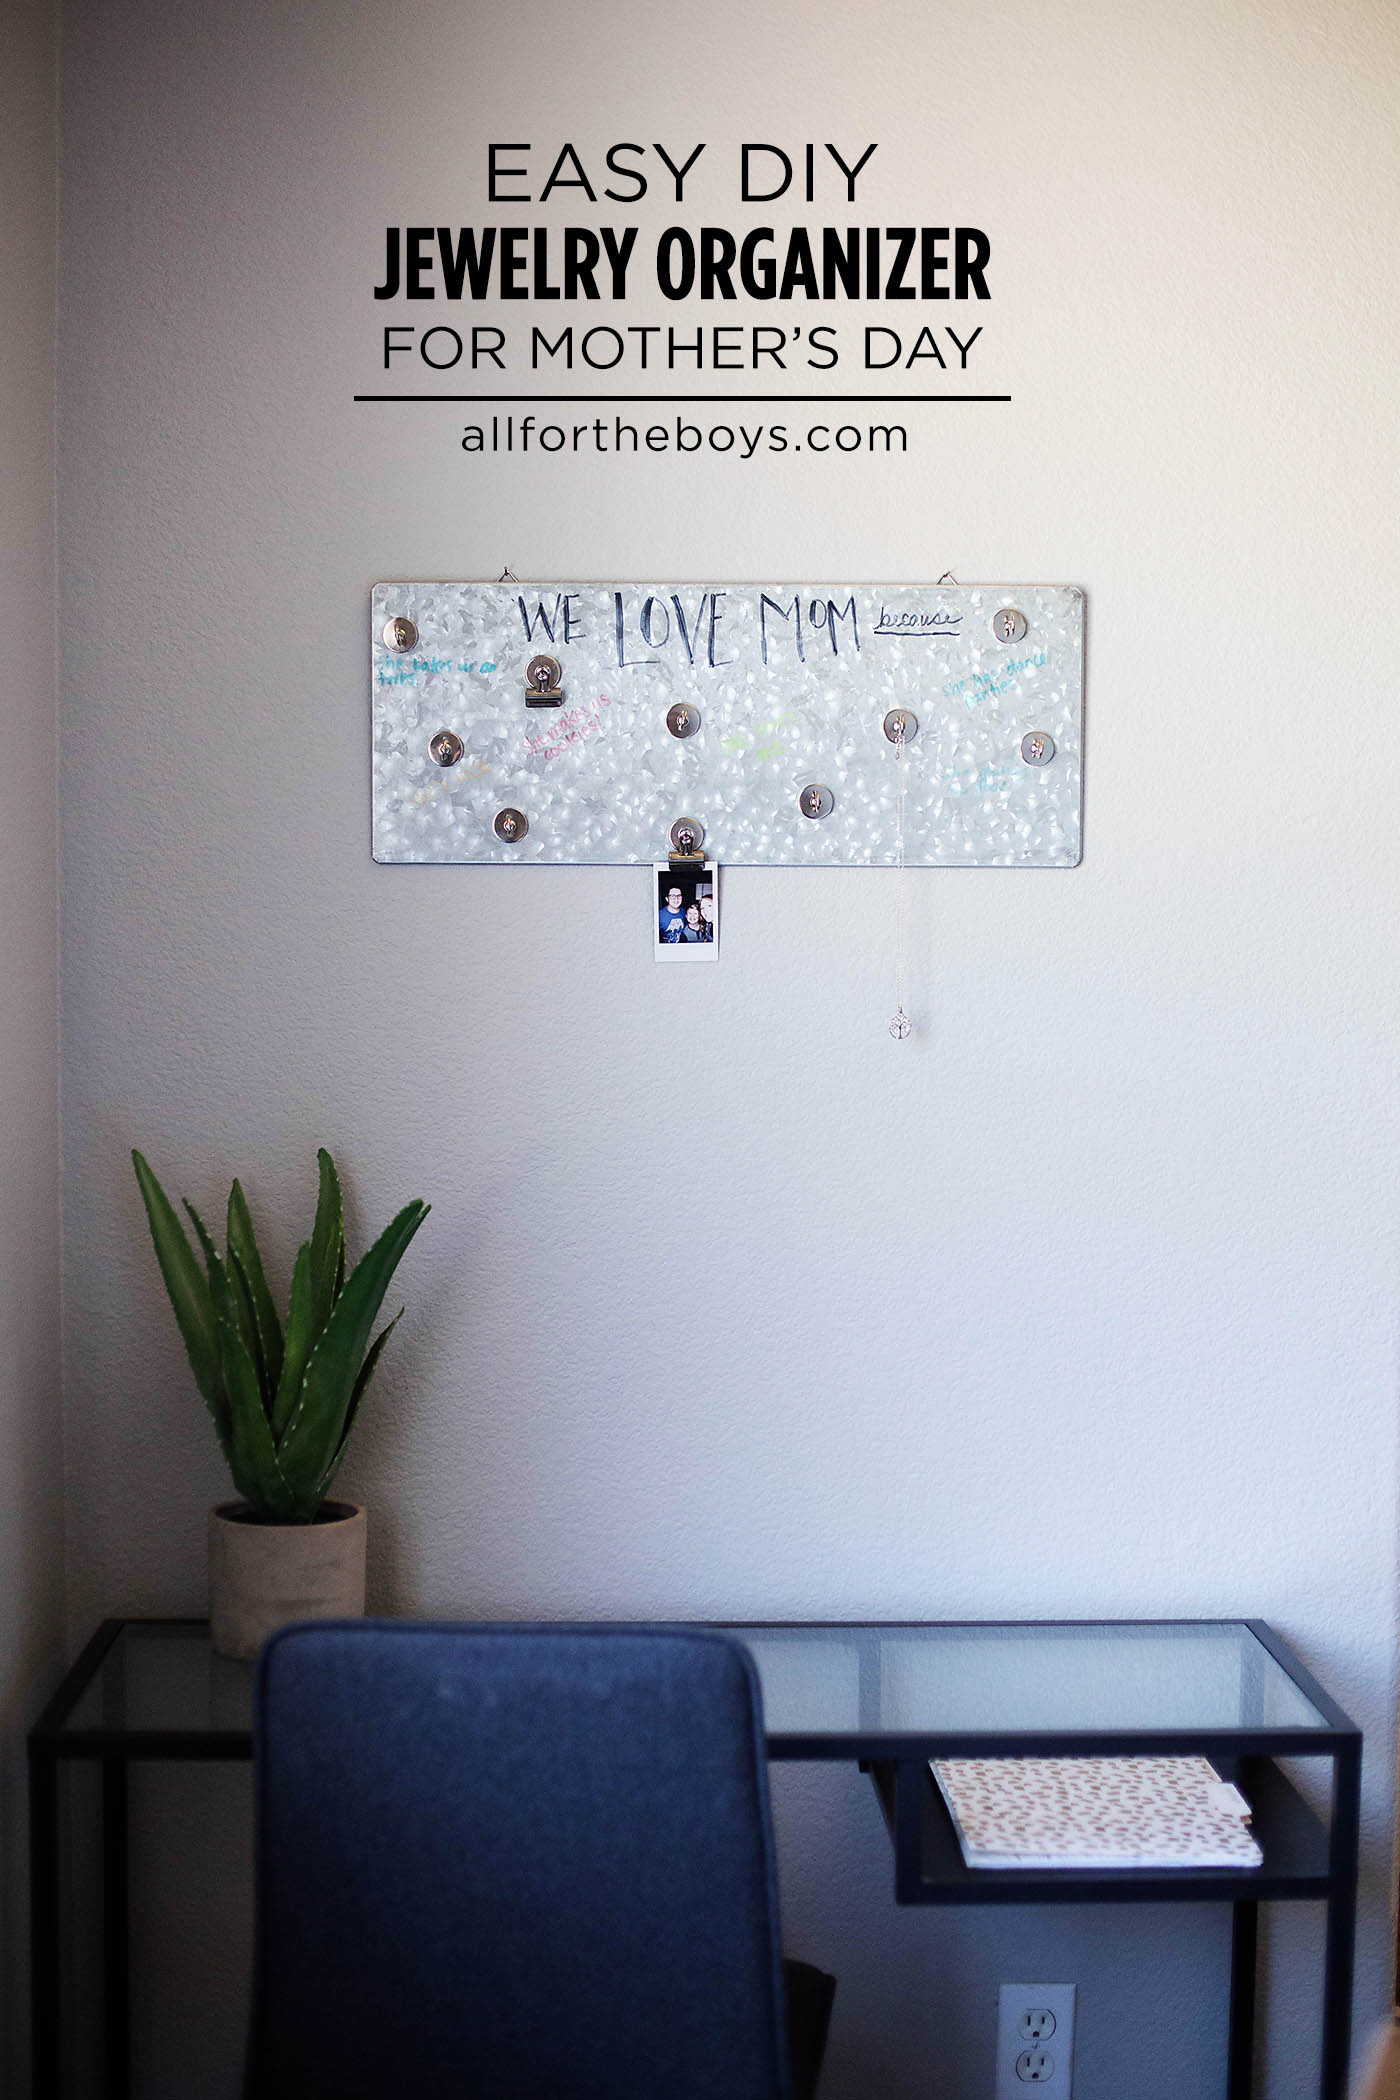 Easy DIY hanging jewelry organizer for Mother's Day